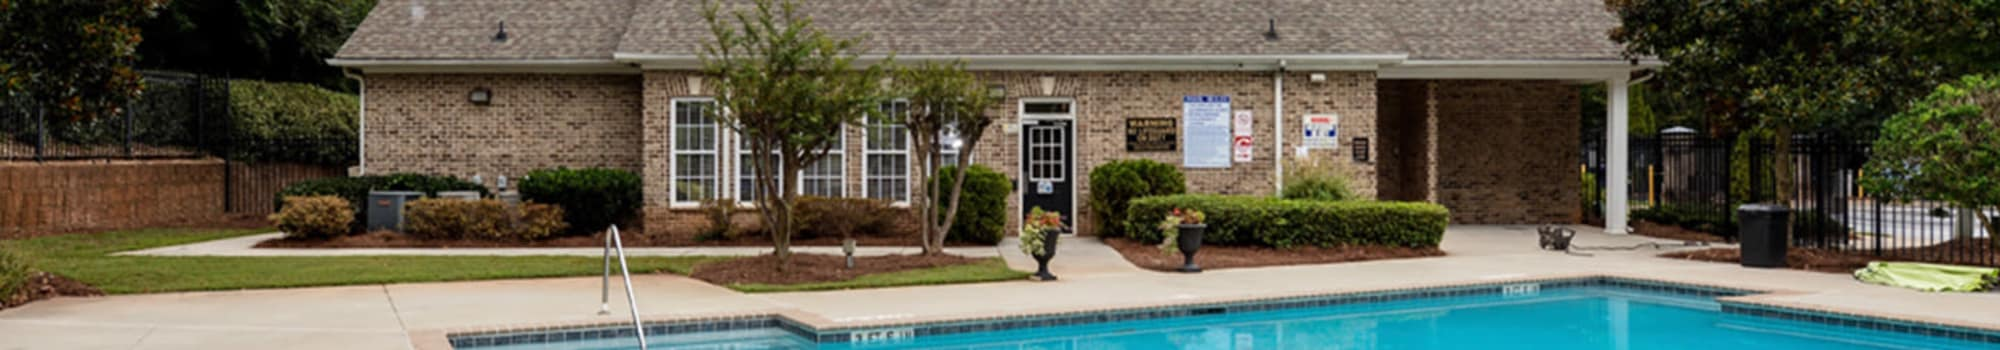 Schedule a tour at Retreat at Stonecrest in Lithonia, Georgia